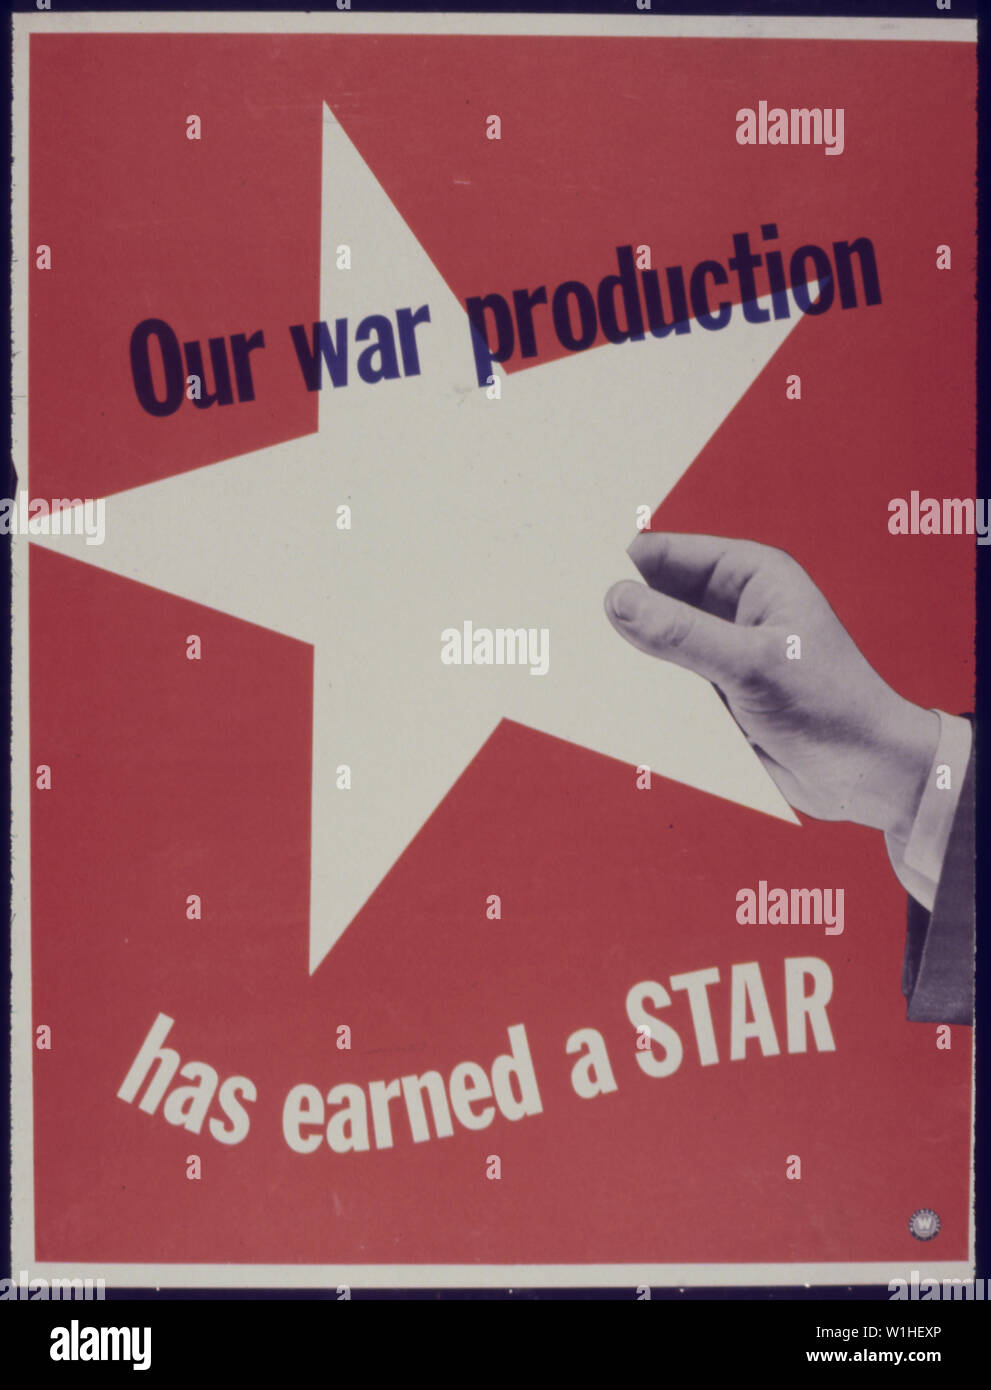 Our War Production has earned a Star - Stock Image